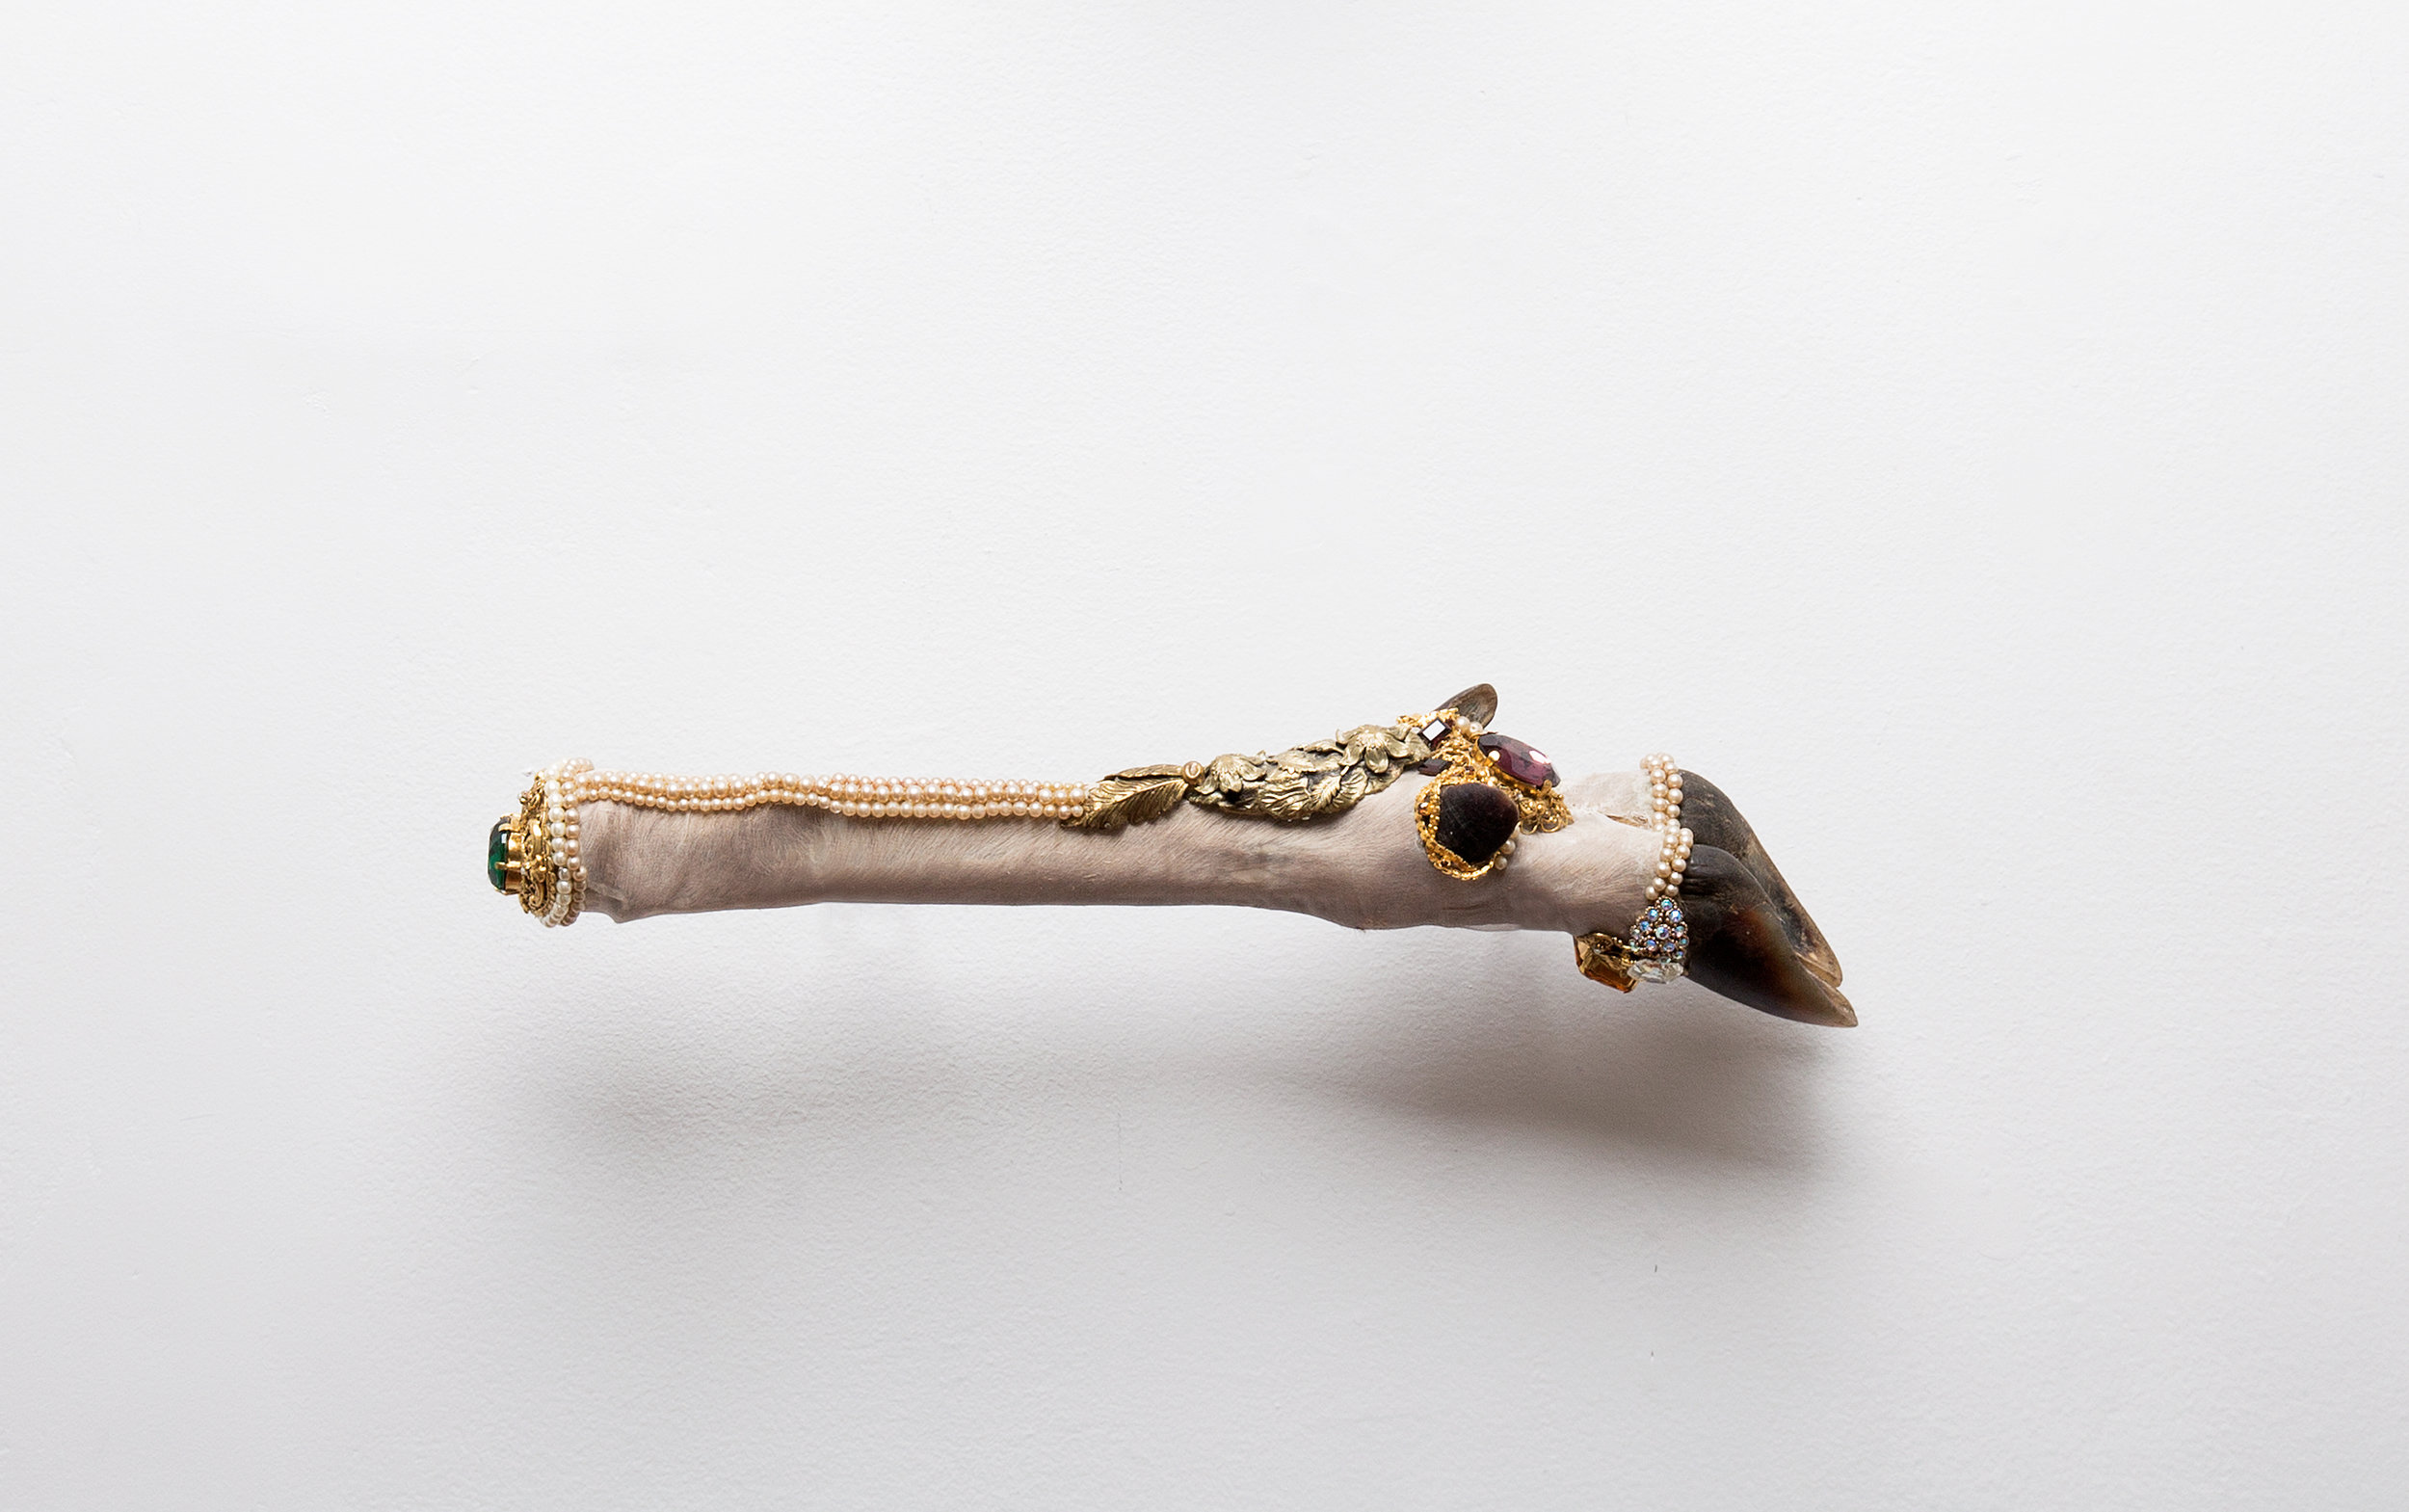 Angela Singer  Phantom Limb (Relic series) , 2015 Recycled vintage taxidermy deer leg, gems, mixed media 80 x 370 x 65 mm [Private collection]   _______